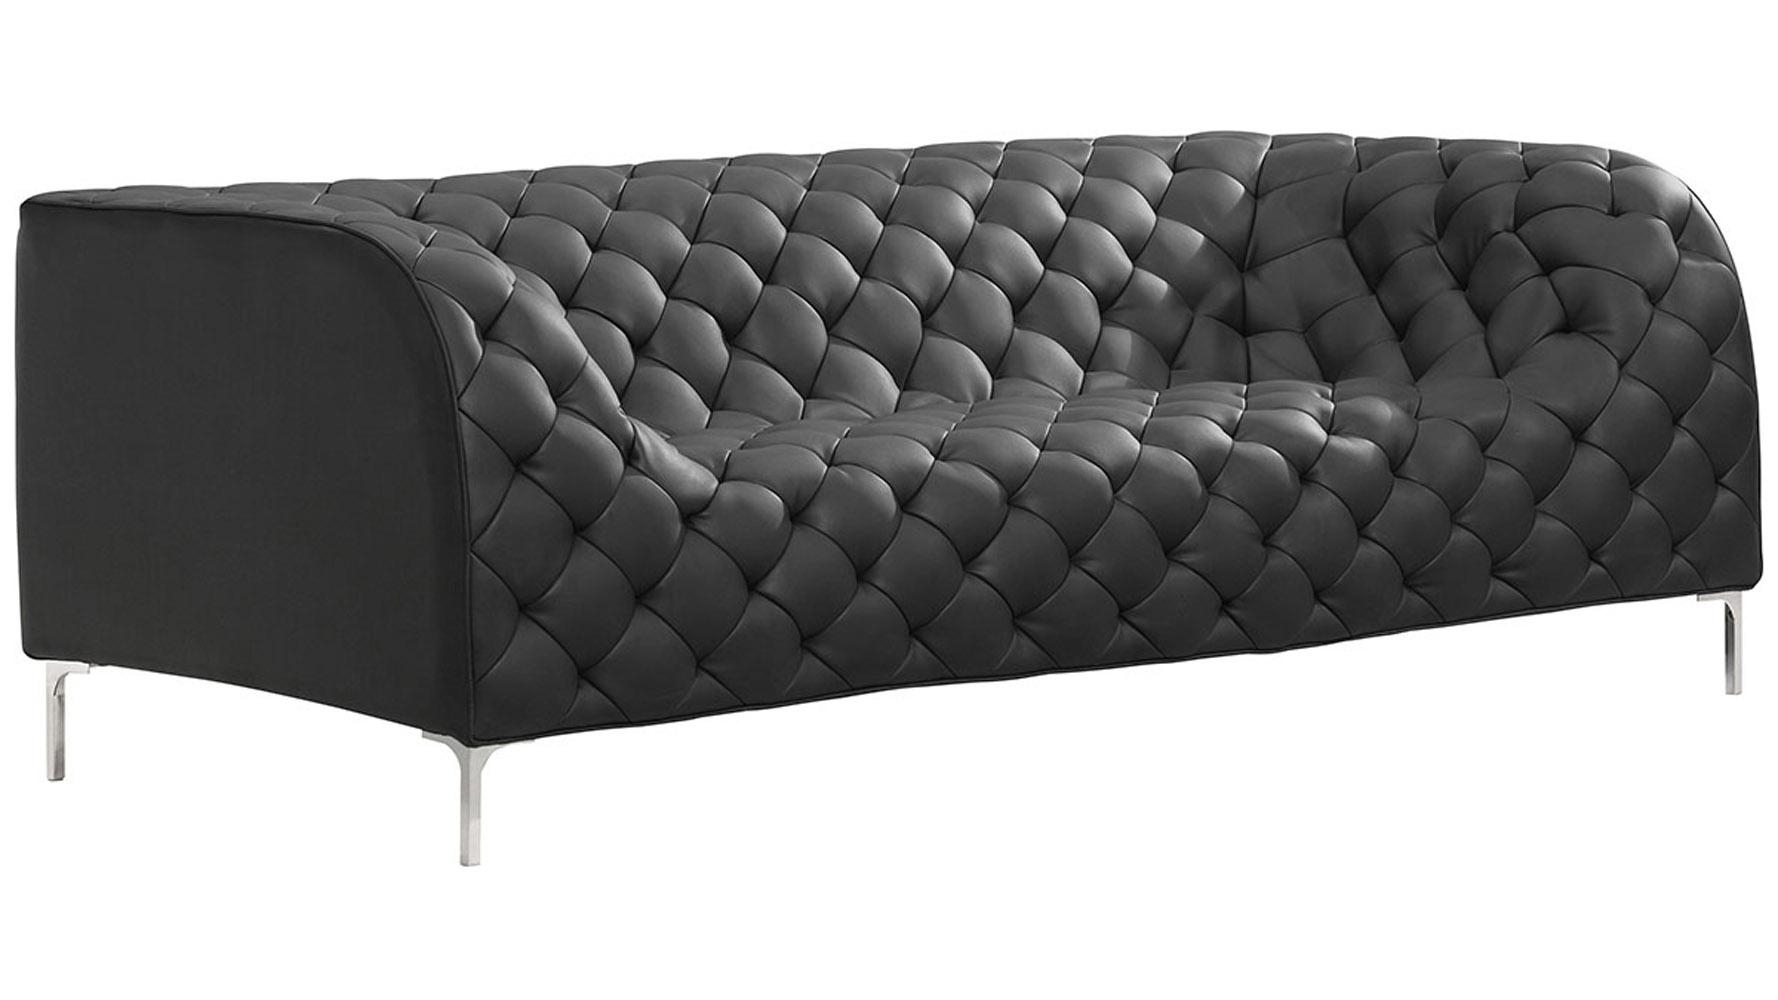 Elijah Sofa | Zuri Furniture With Sofas With Chrome Legs (Image 8 of 20)